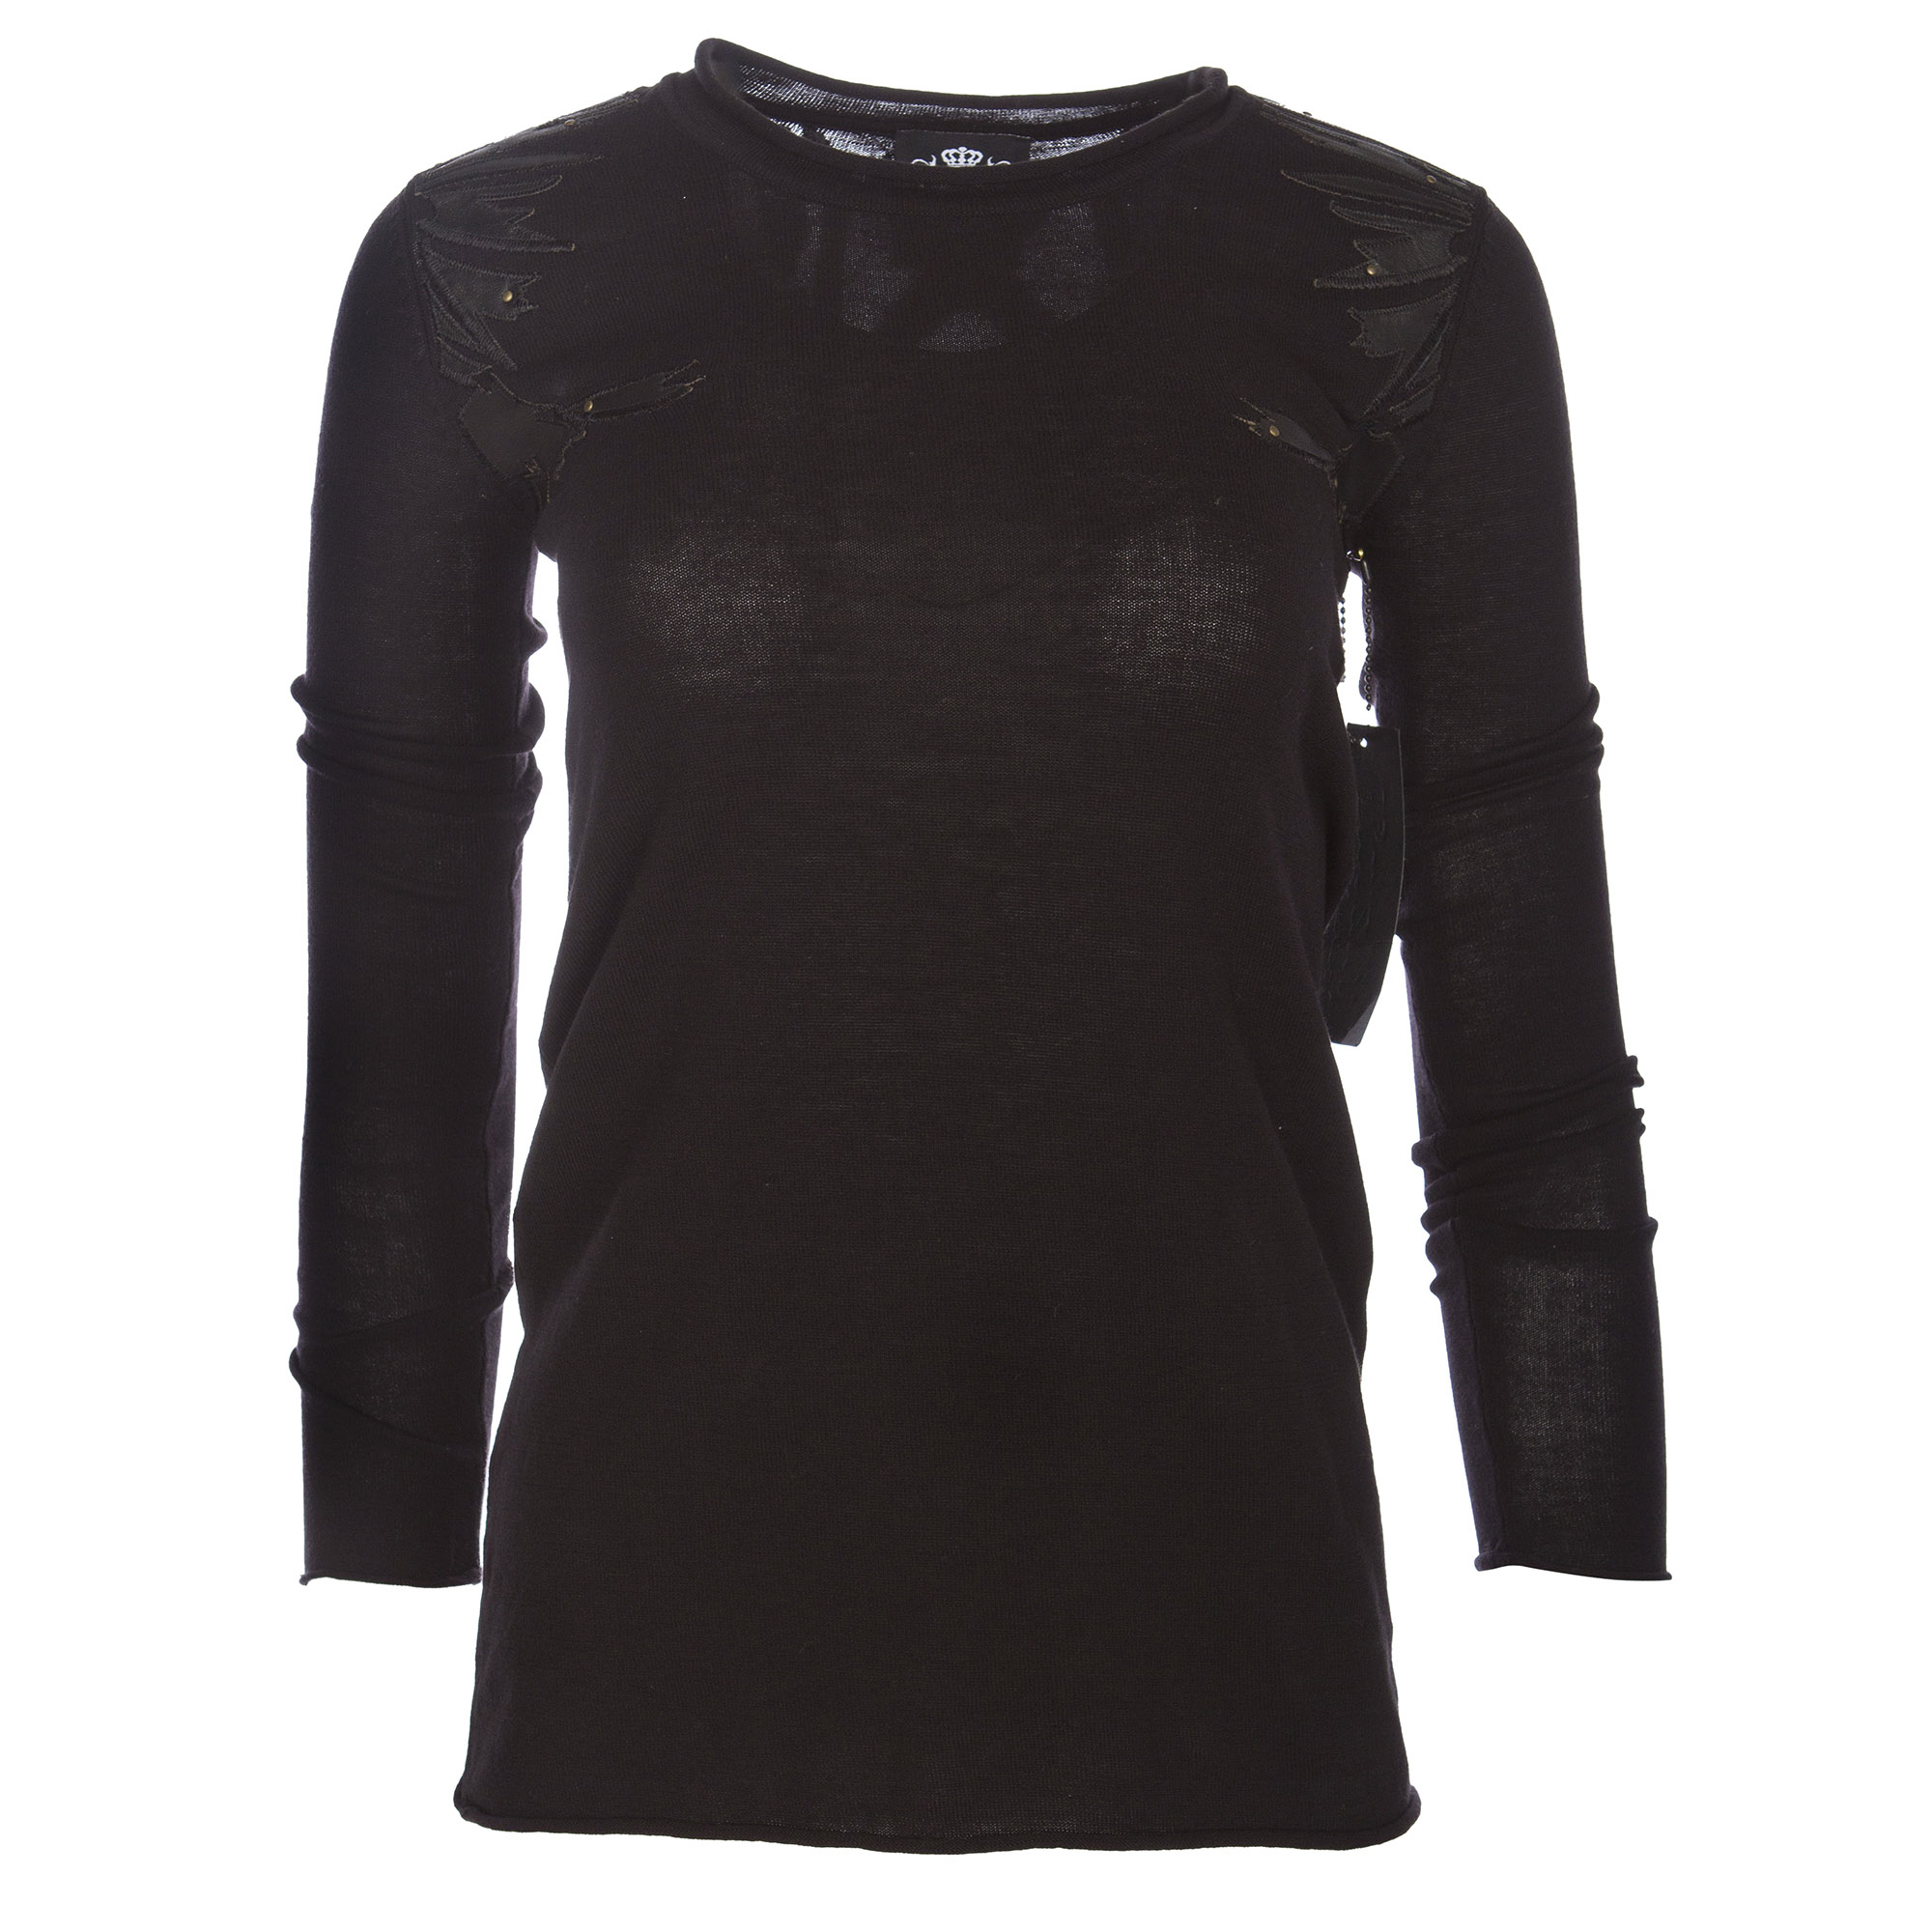 RAW 7 Y08A20S Royalty By Raw7 Women's Black Crew Neck Sweater Eagles Design